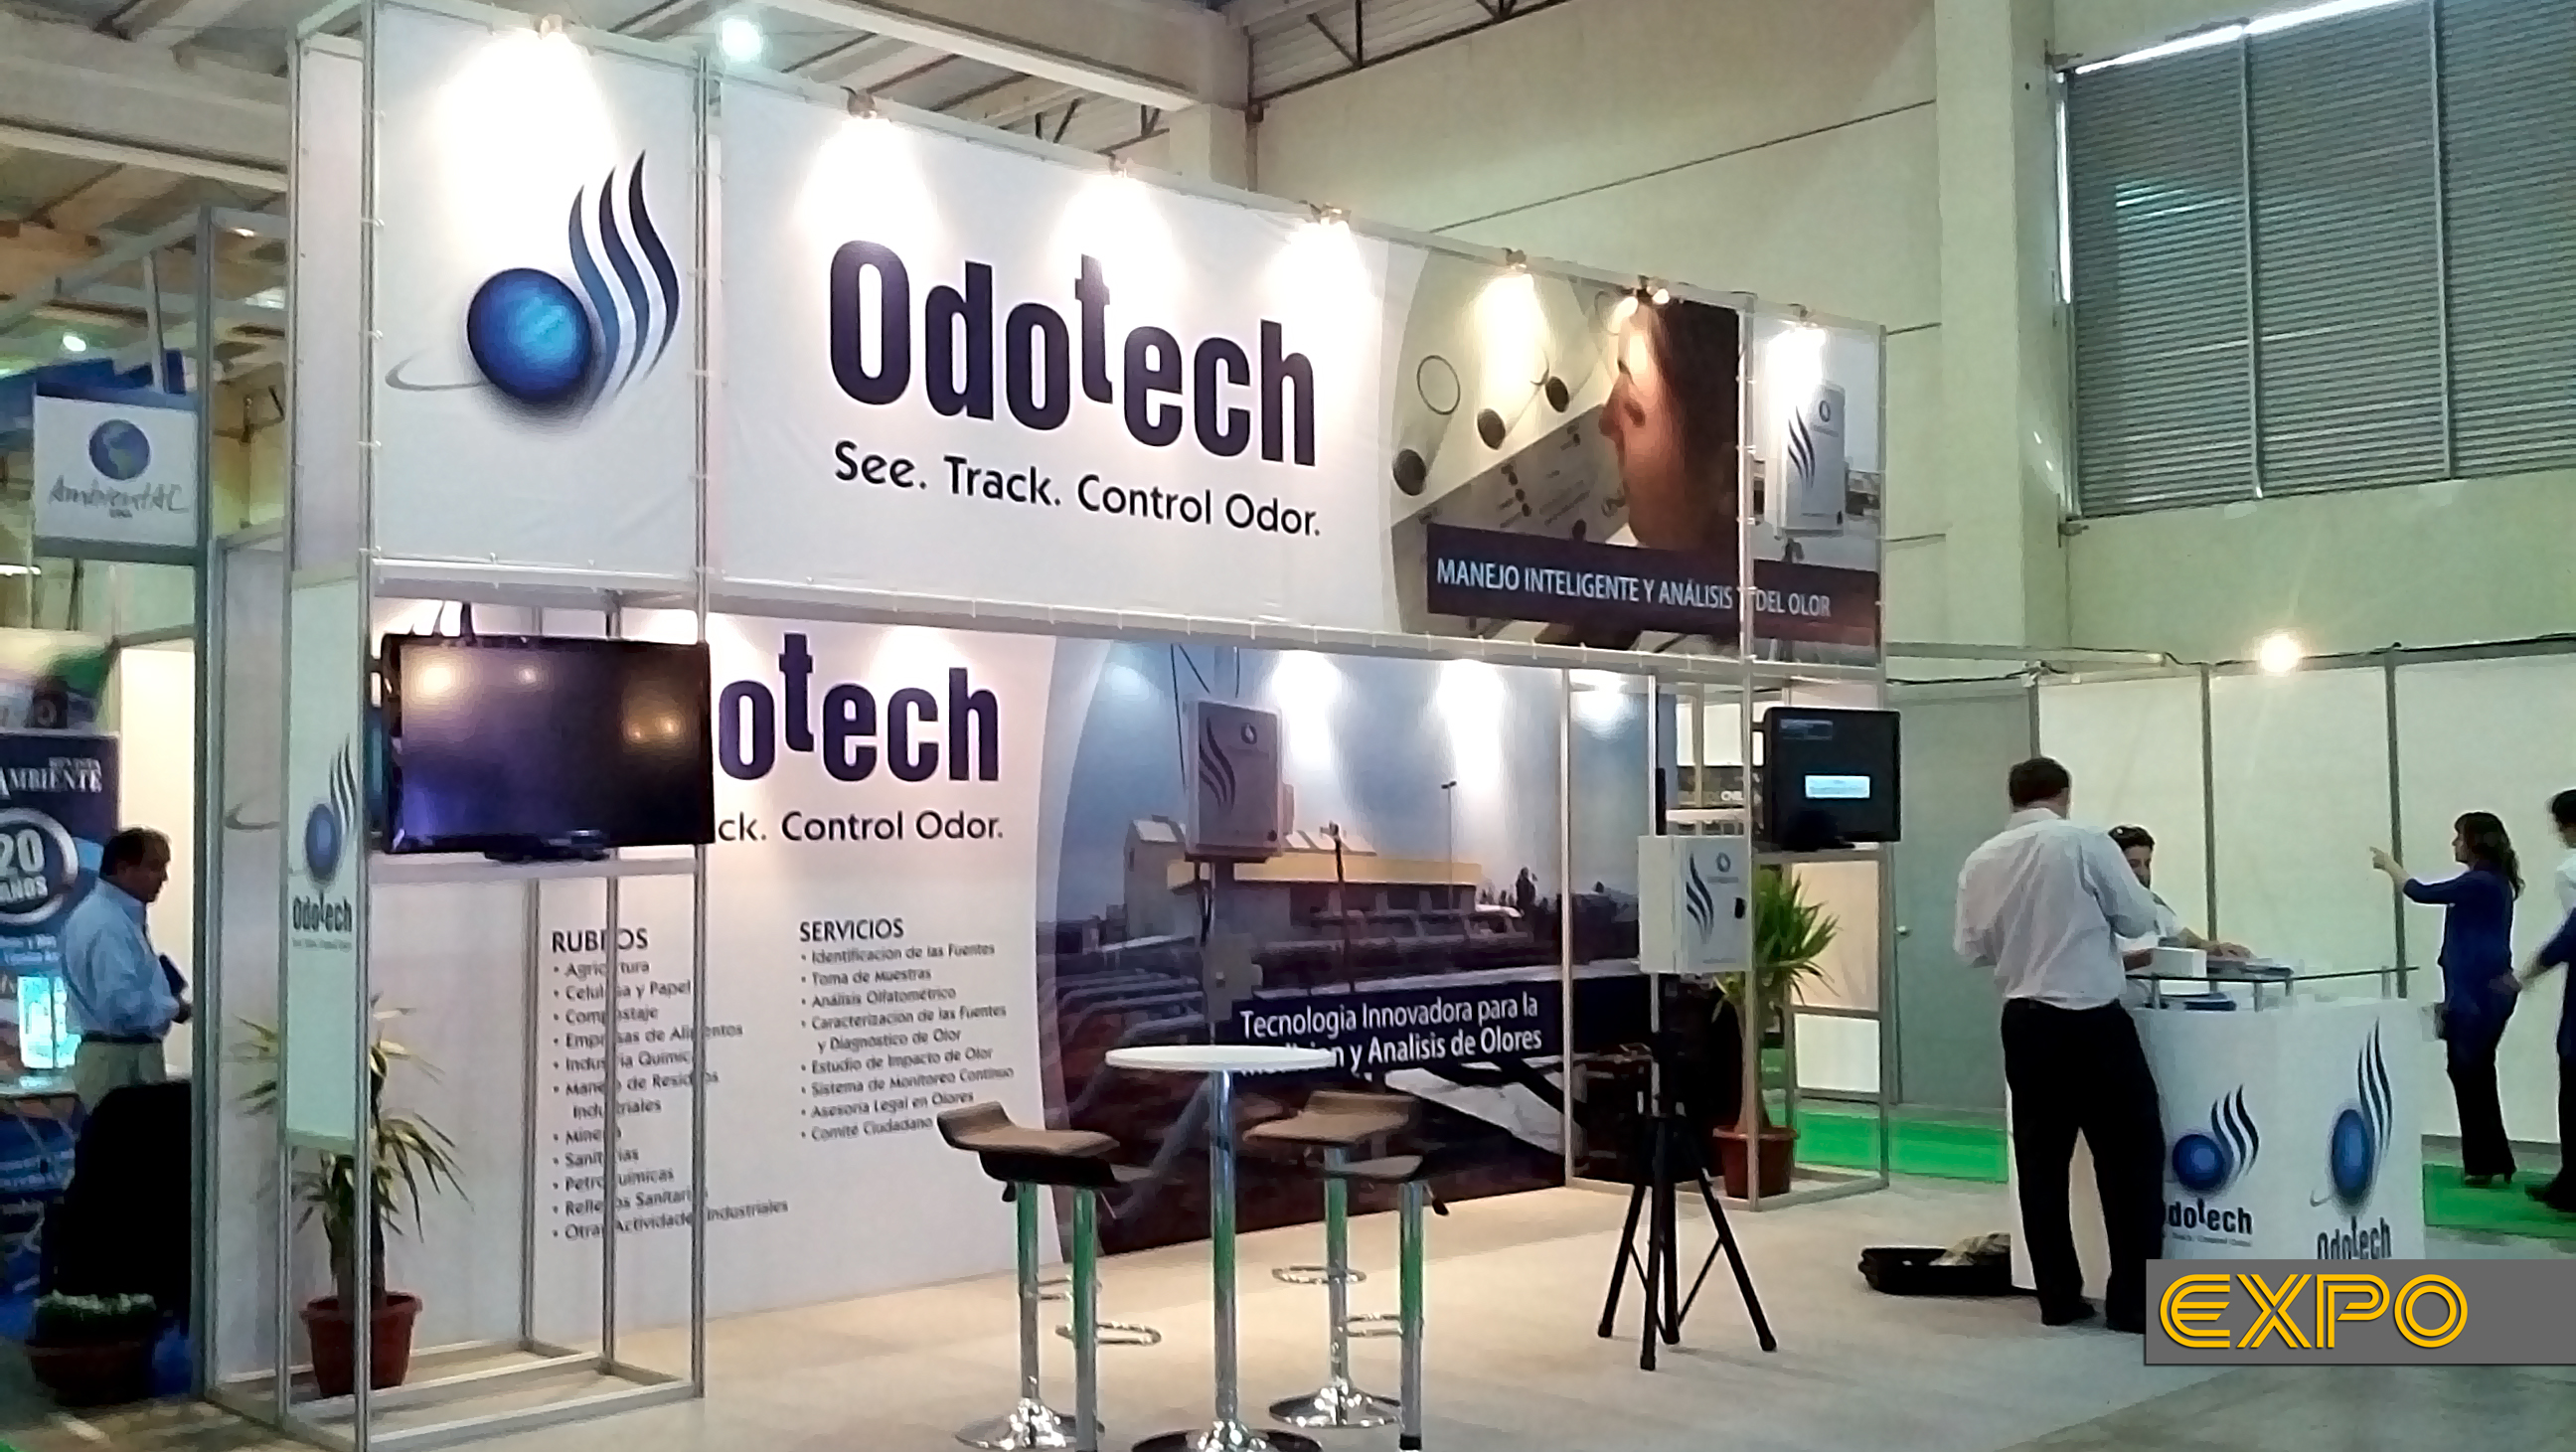 Odotech - Expo AmbientAL 2013